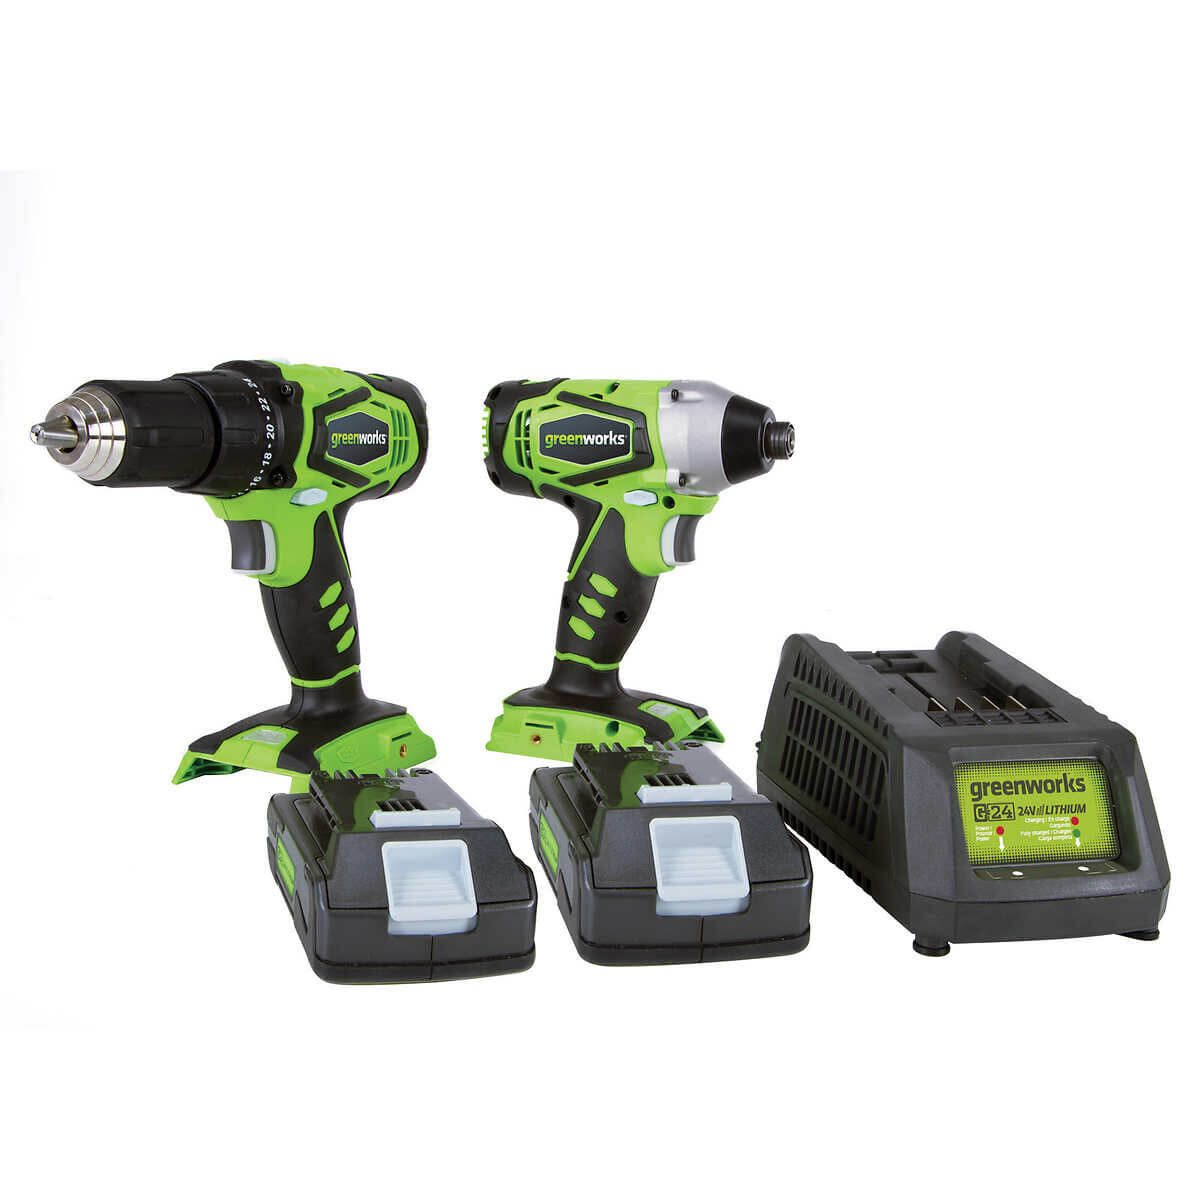 greenworks cordless drill